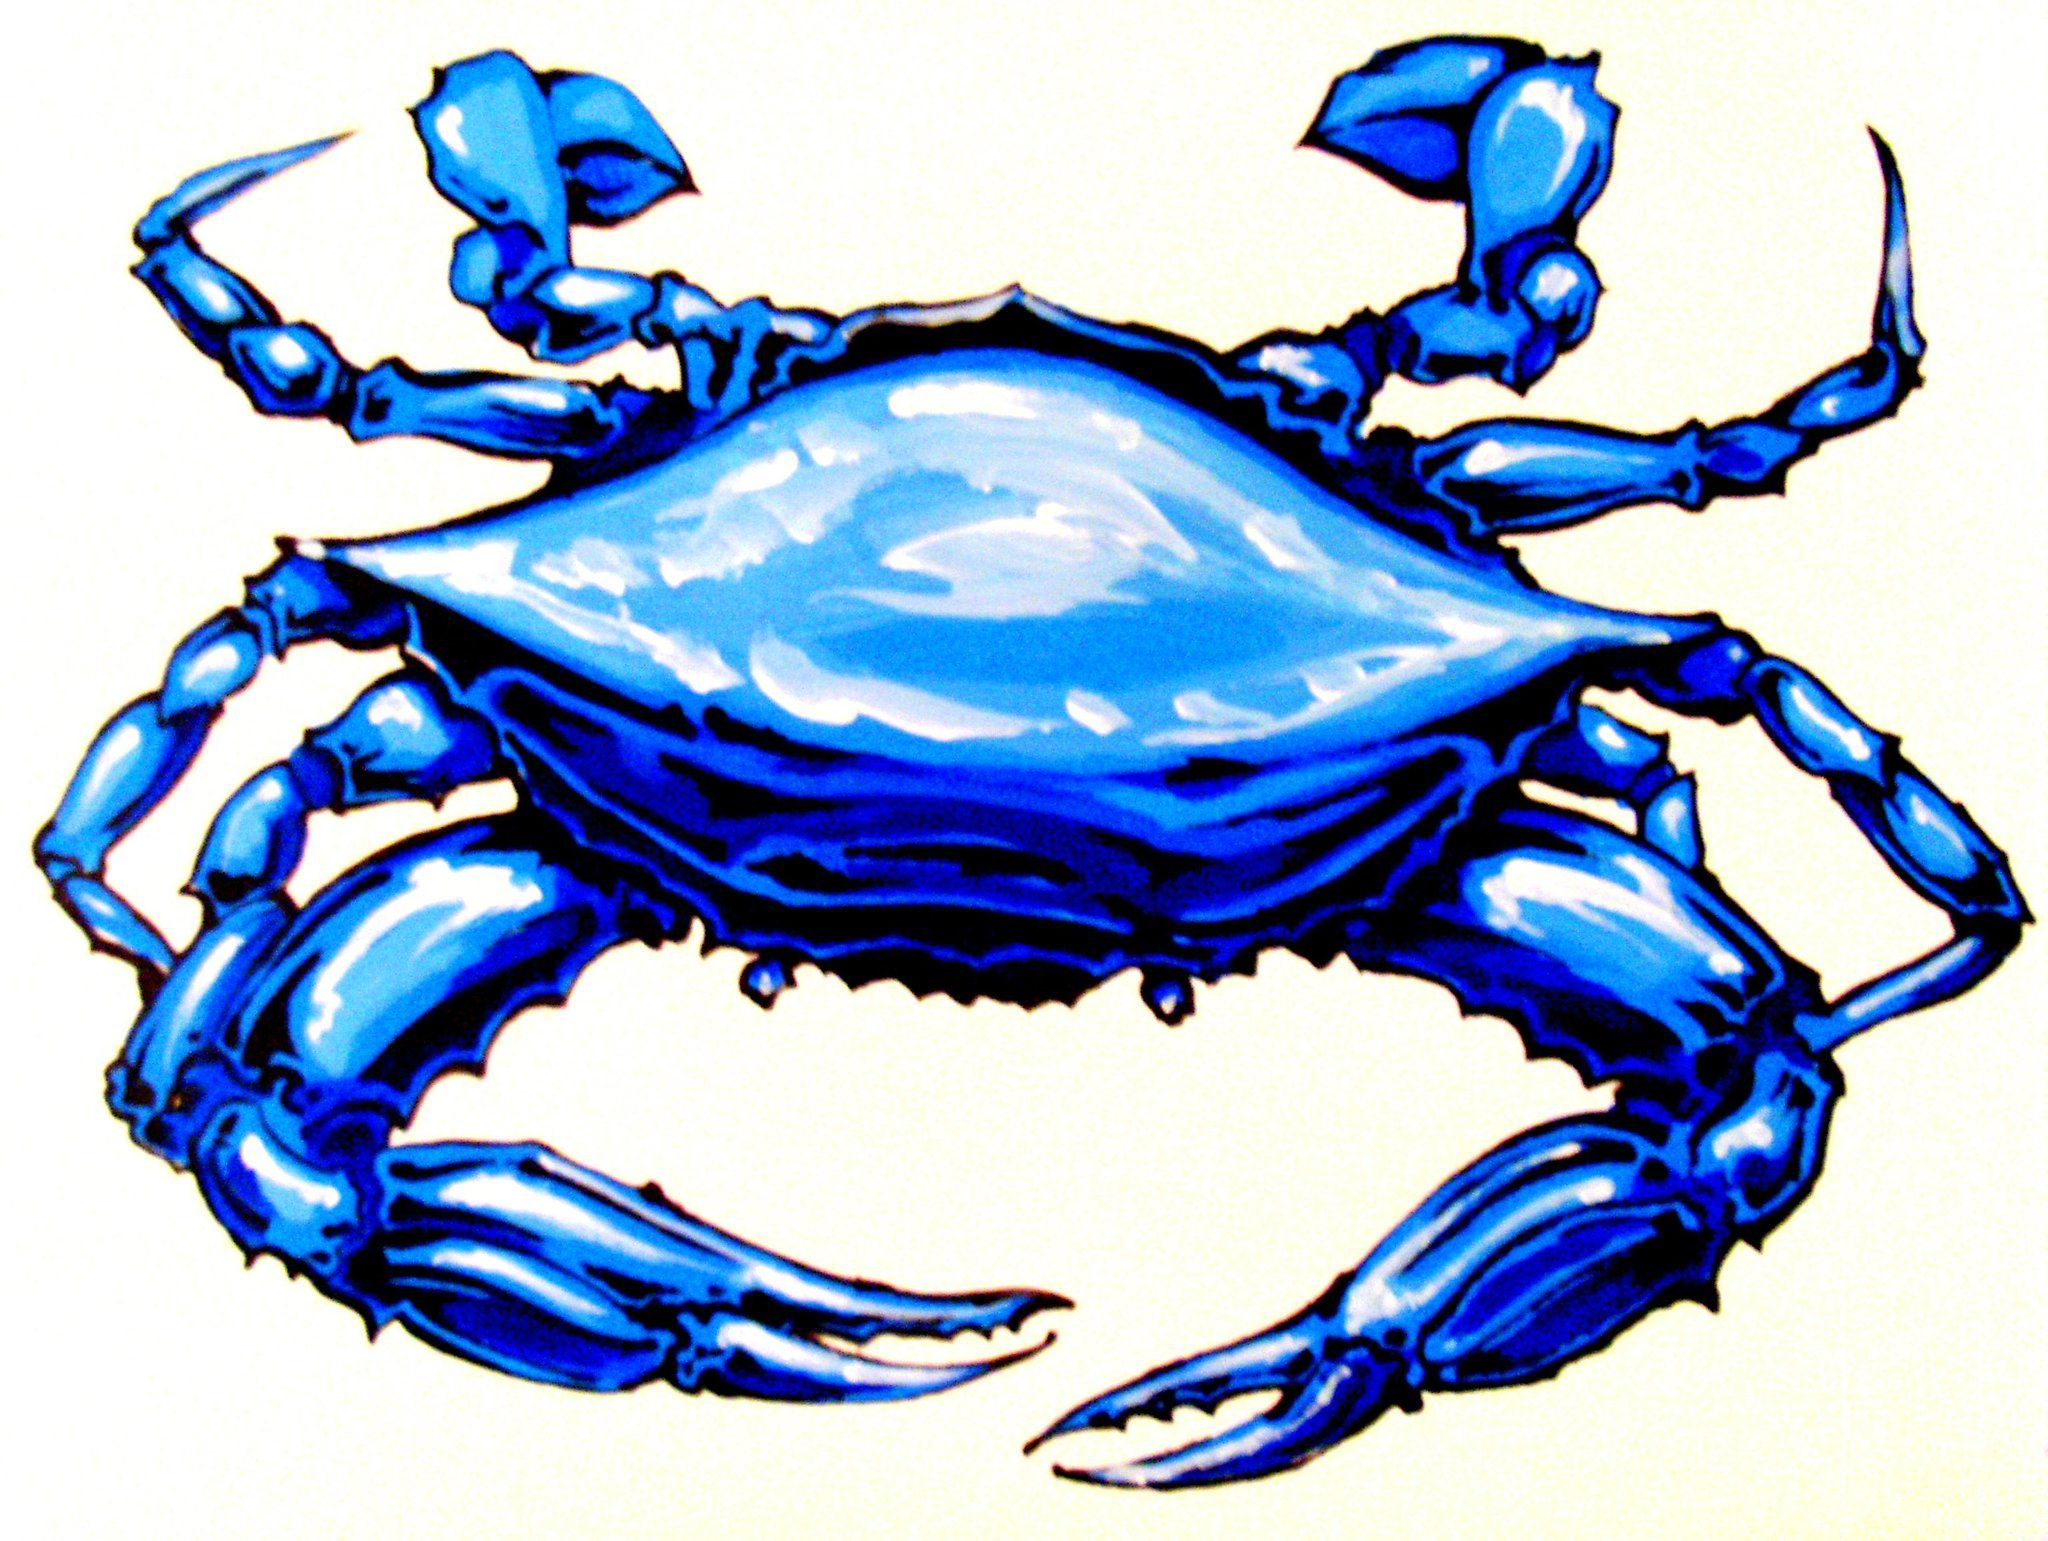 hight resolution of blue crab painting clipart panda free clipart images